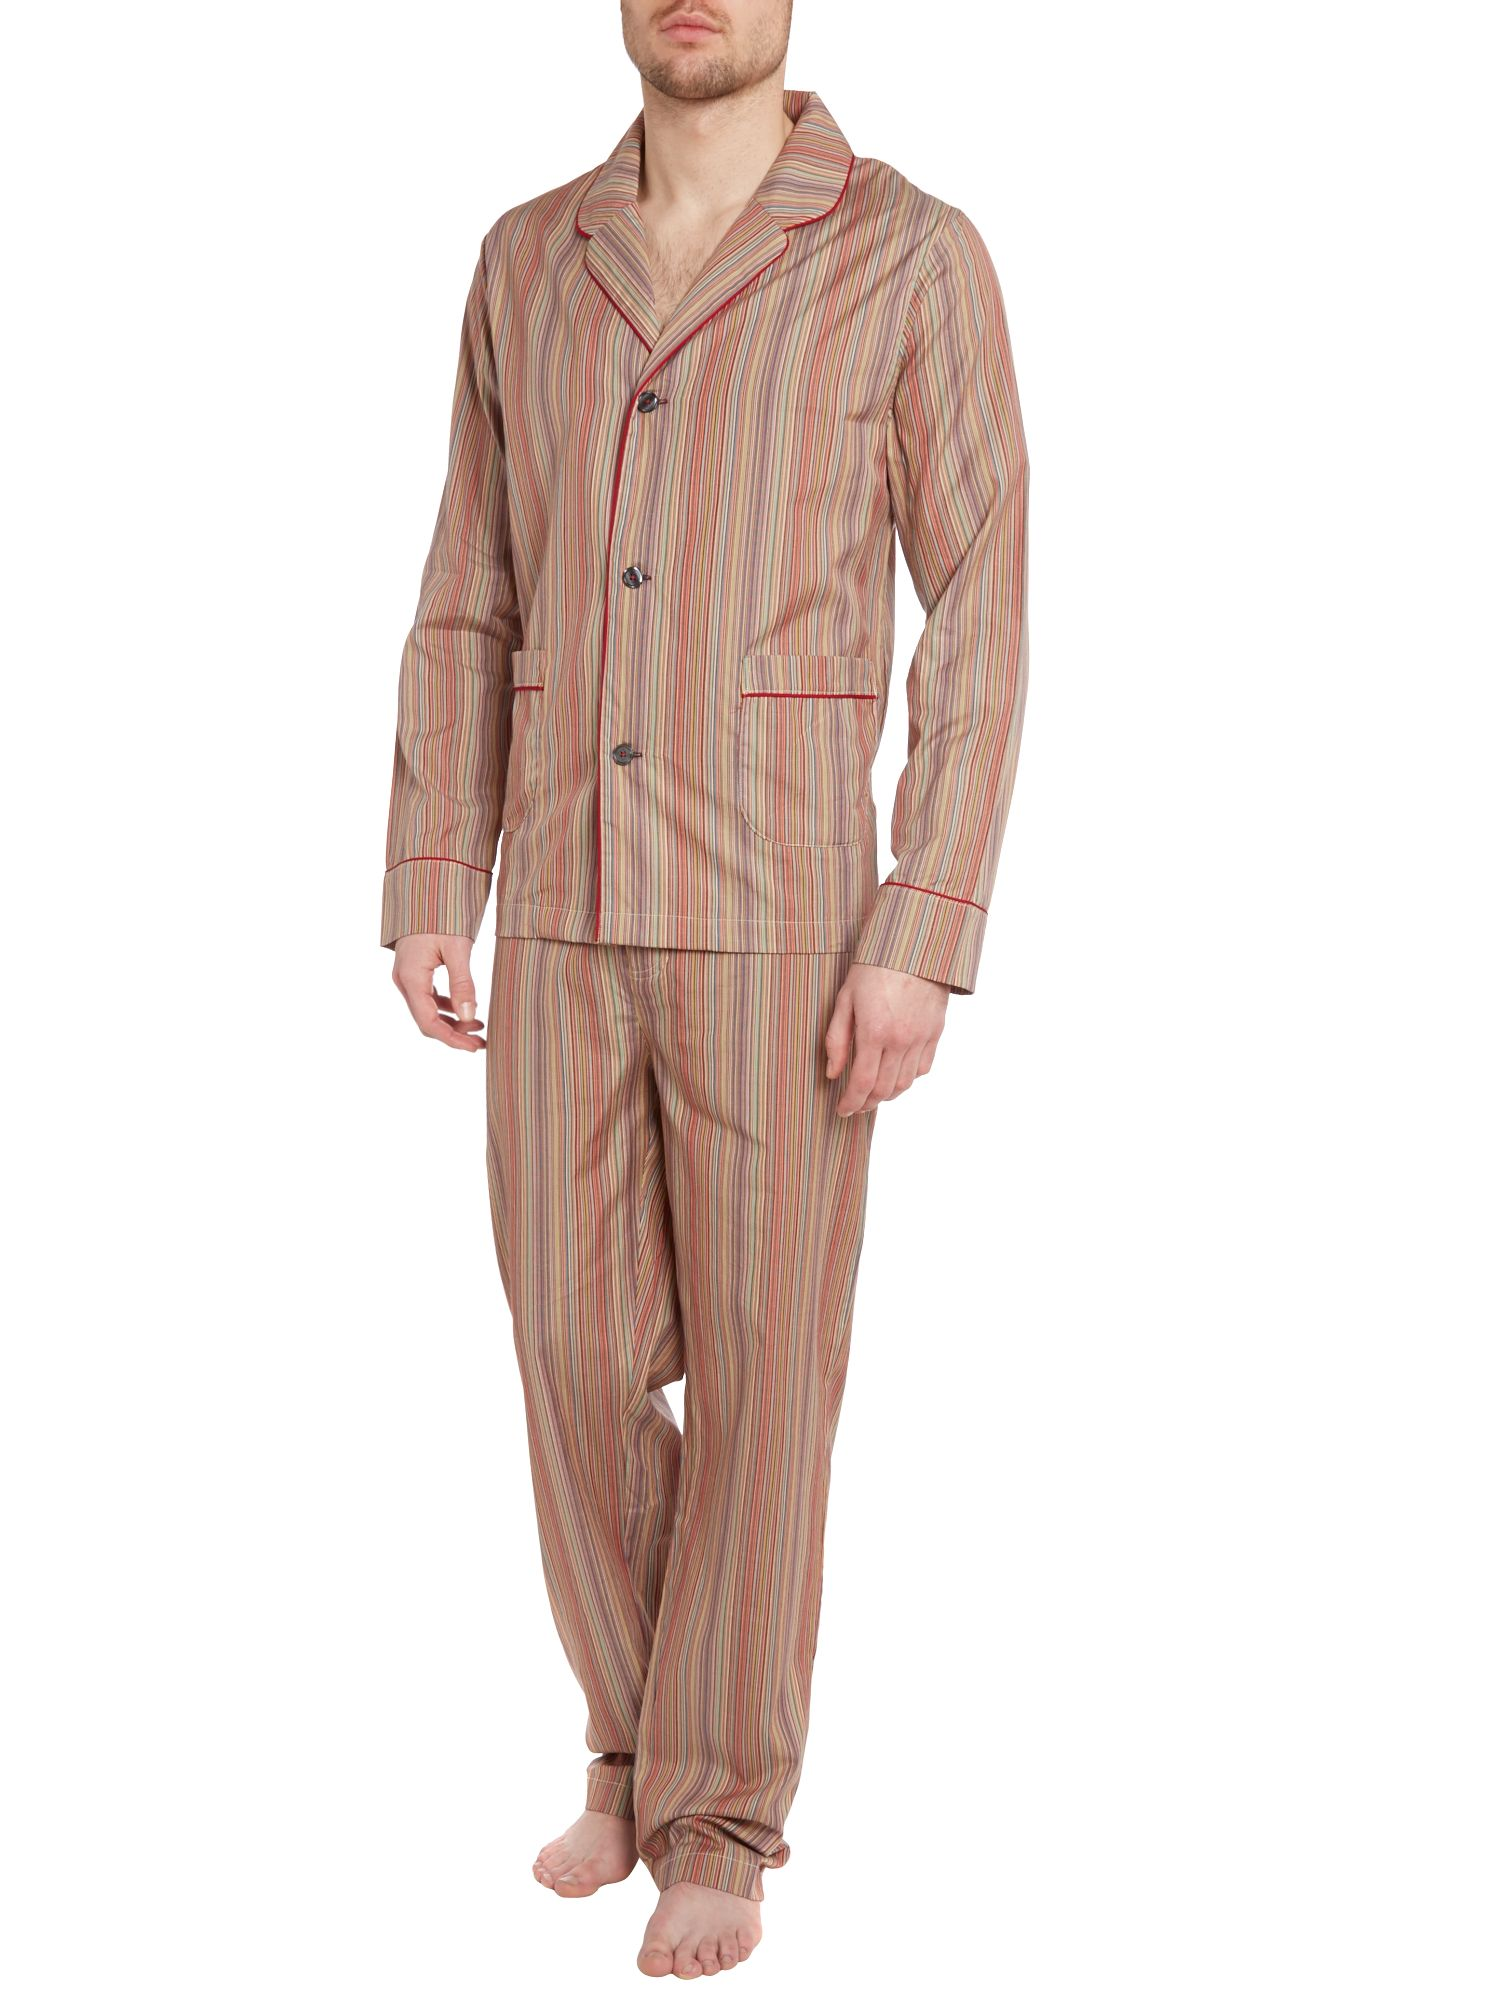 Multistripe pyjama set